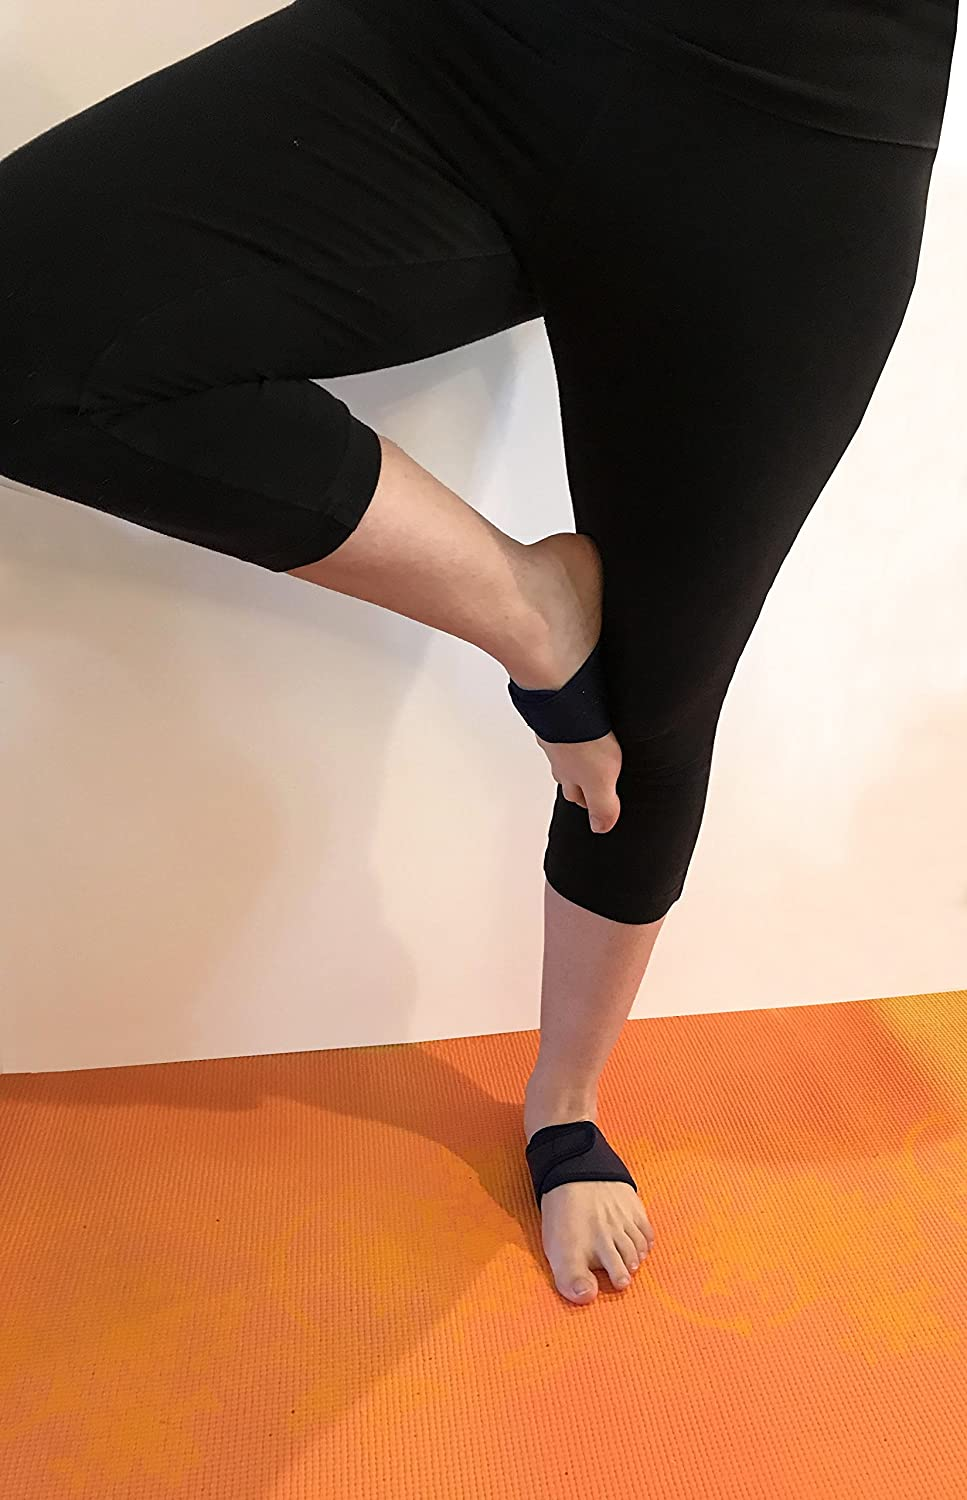 Arch Support Series H for High Arches Supportive Comfortable Adjustable Snug Fit Best Cushioned Pain Relief for Plantar Fasciitis Heel Spurs Foot Pain /& Heel Pain Flat Feet Pain in Arch of Foot